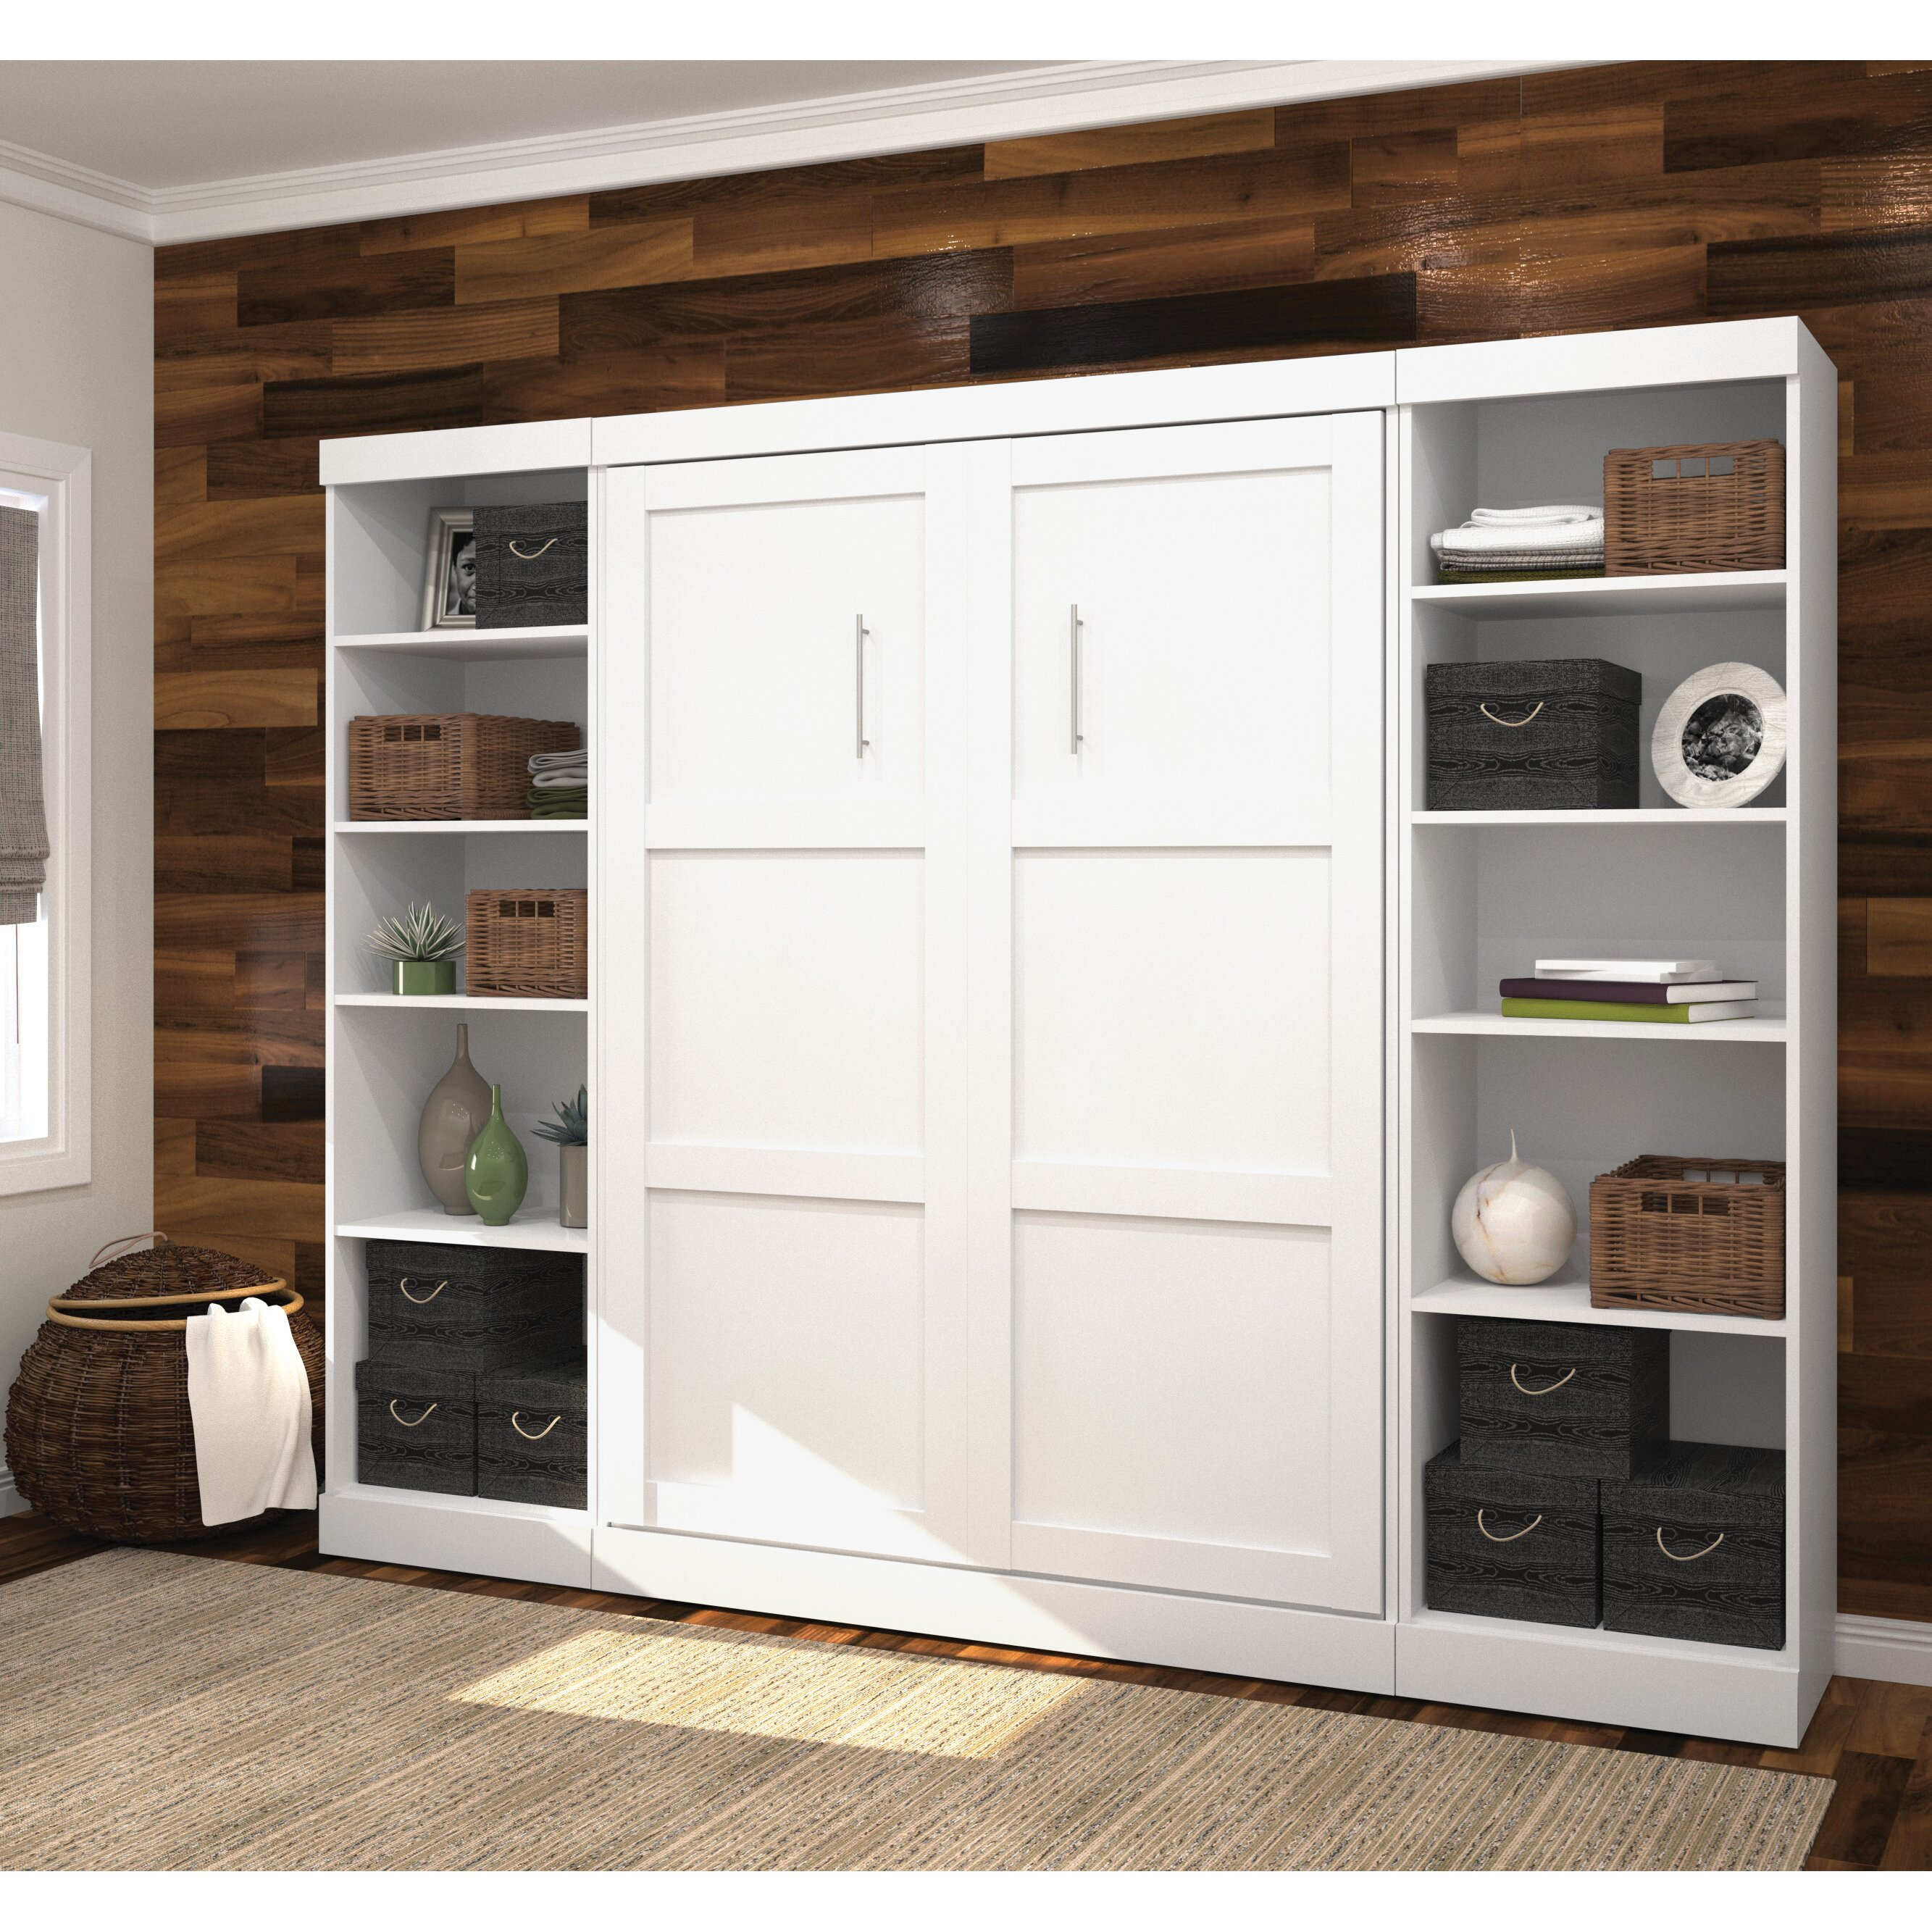 latitude run full double storage murphy bed reviews. Black Bedroom Furniture Sets. Home Design Ideas